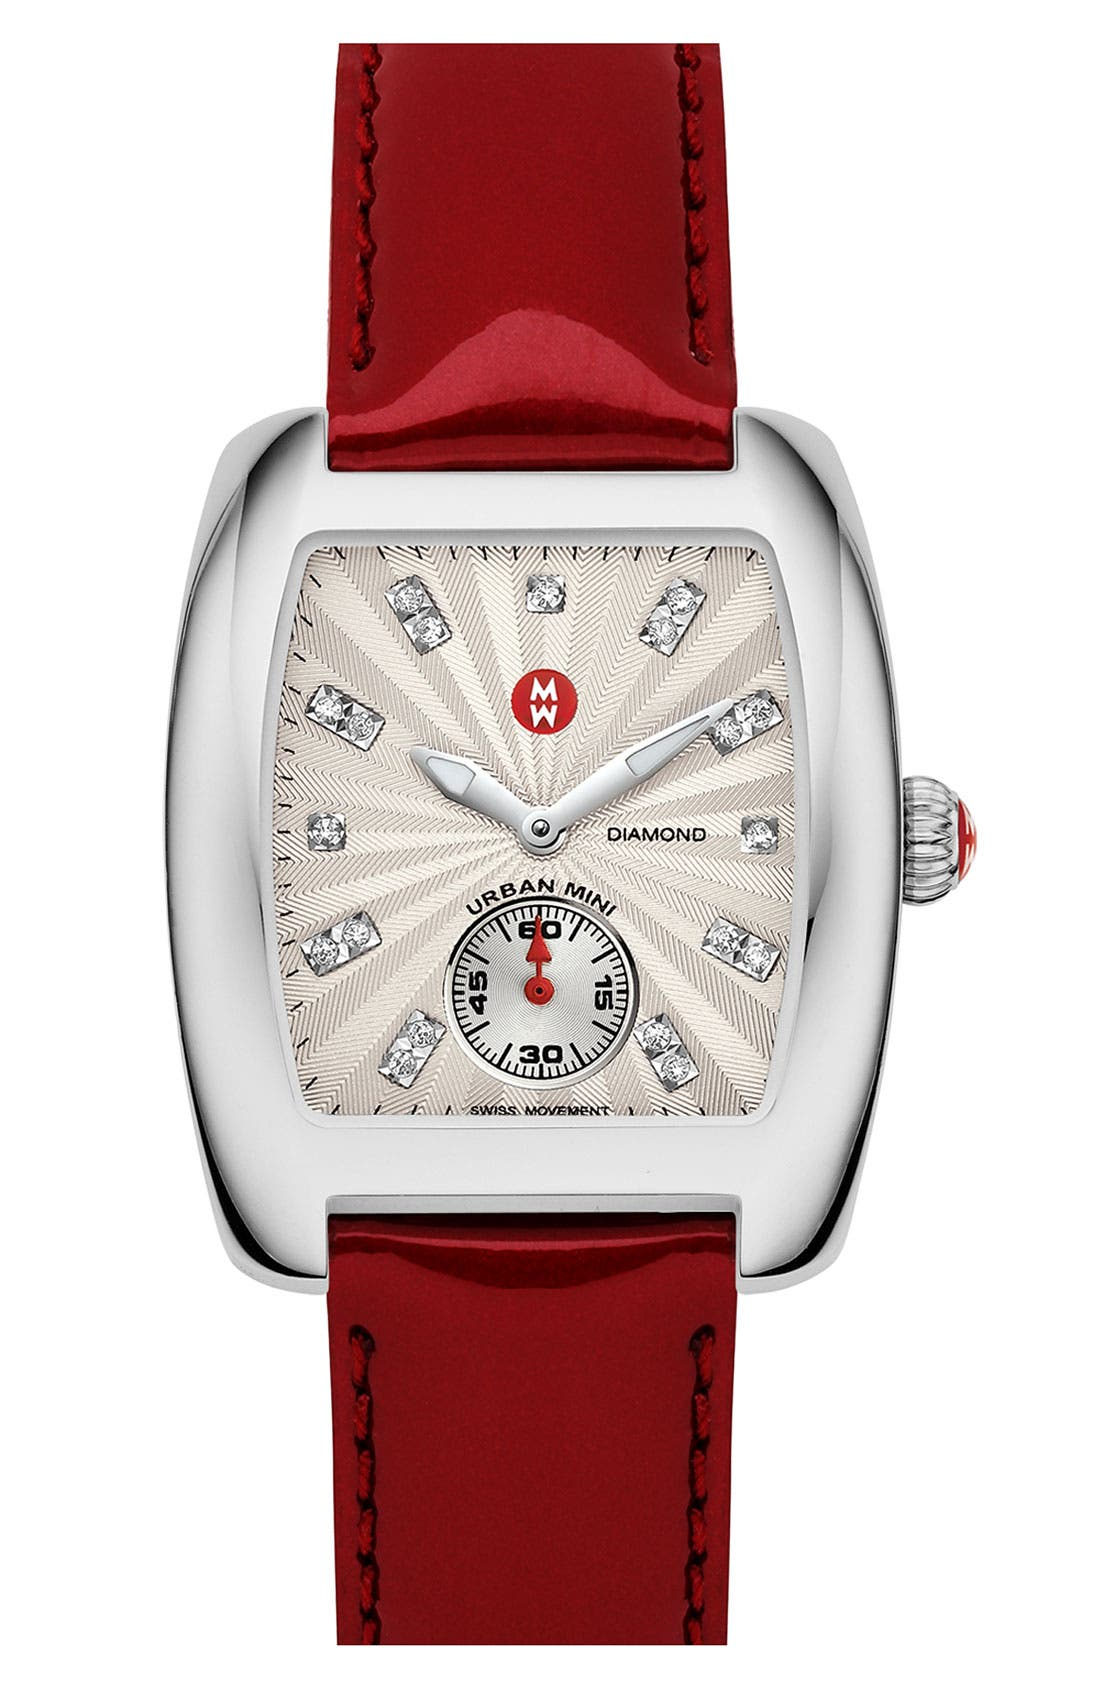 Main Image - MICHELE 'Urban Mini' Diamond Dial Watch Case & 16mm Scarlet Patent Leather Strap